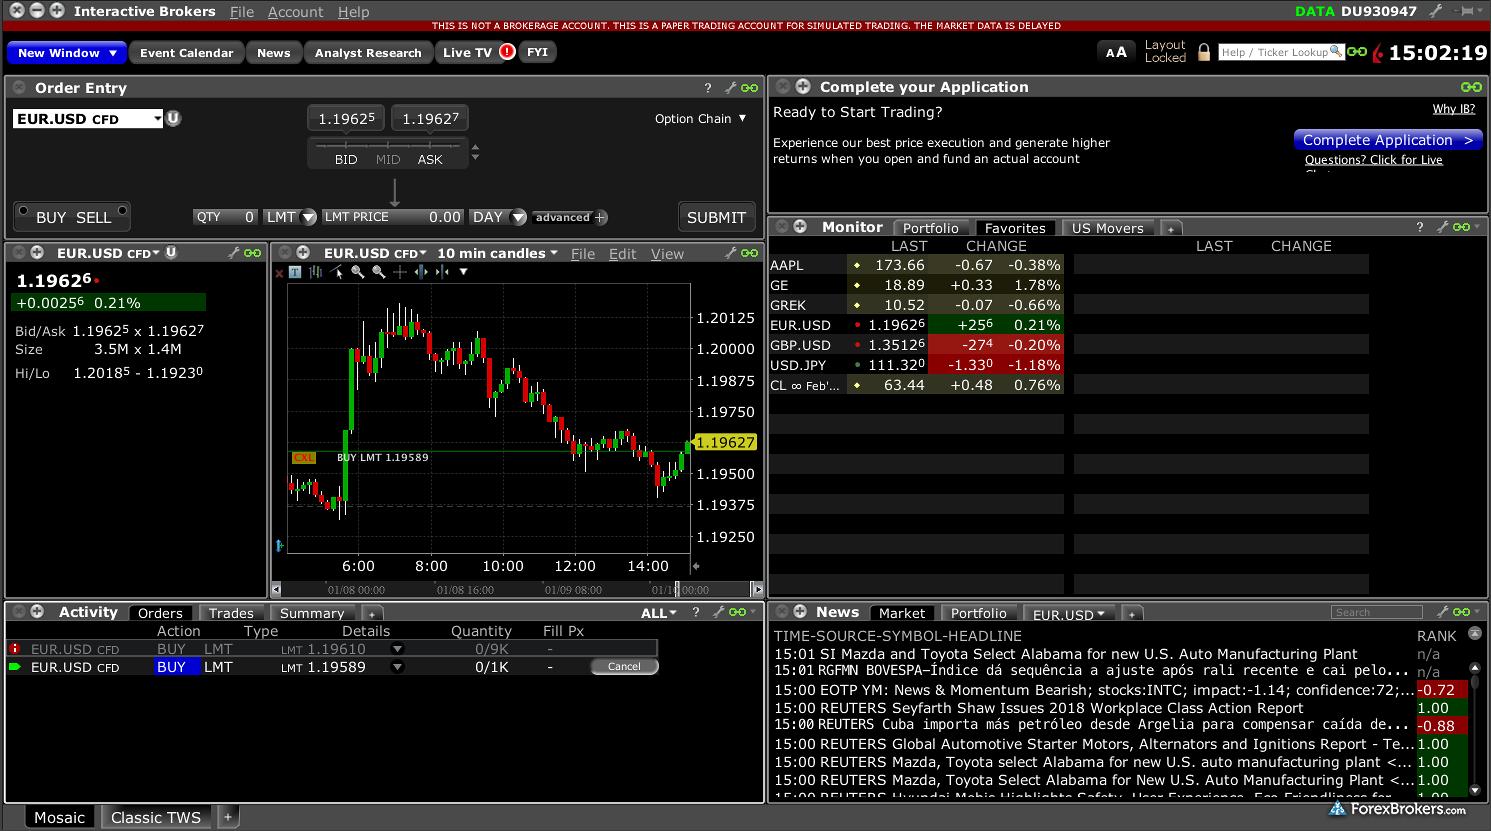 Interactive Brokers TWS desktop